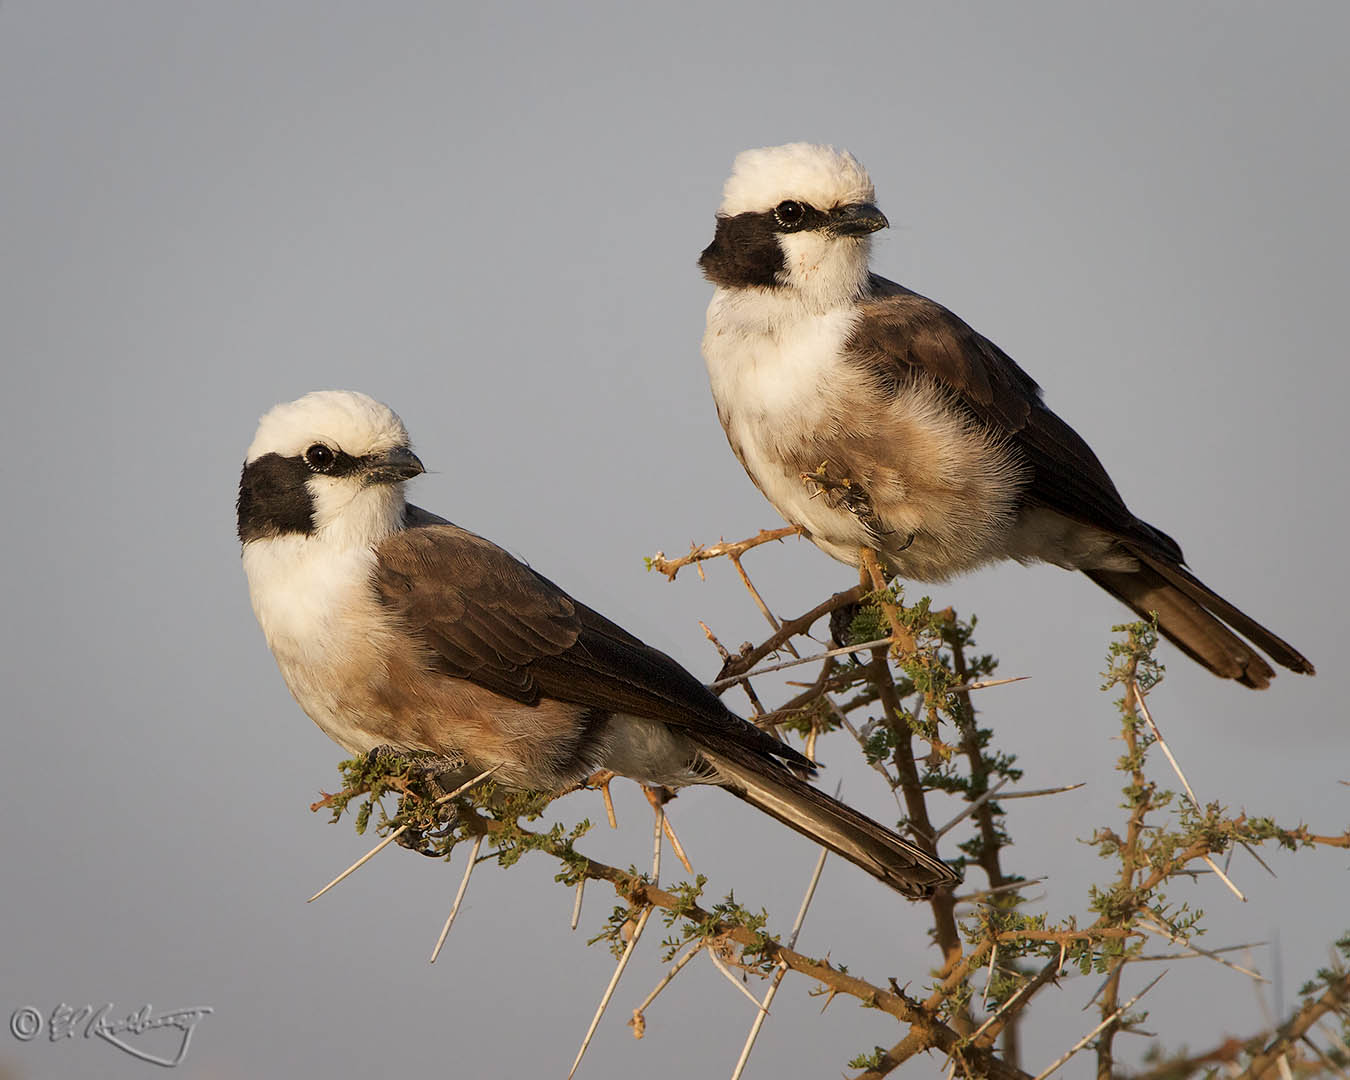 White-crowned_Helment_Shrike_pair-c83